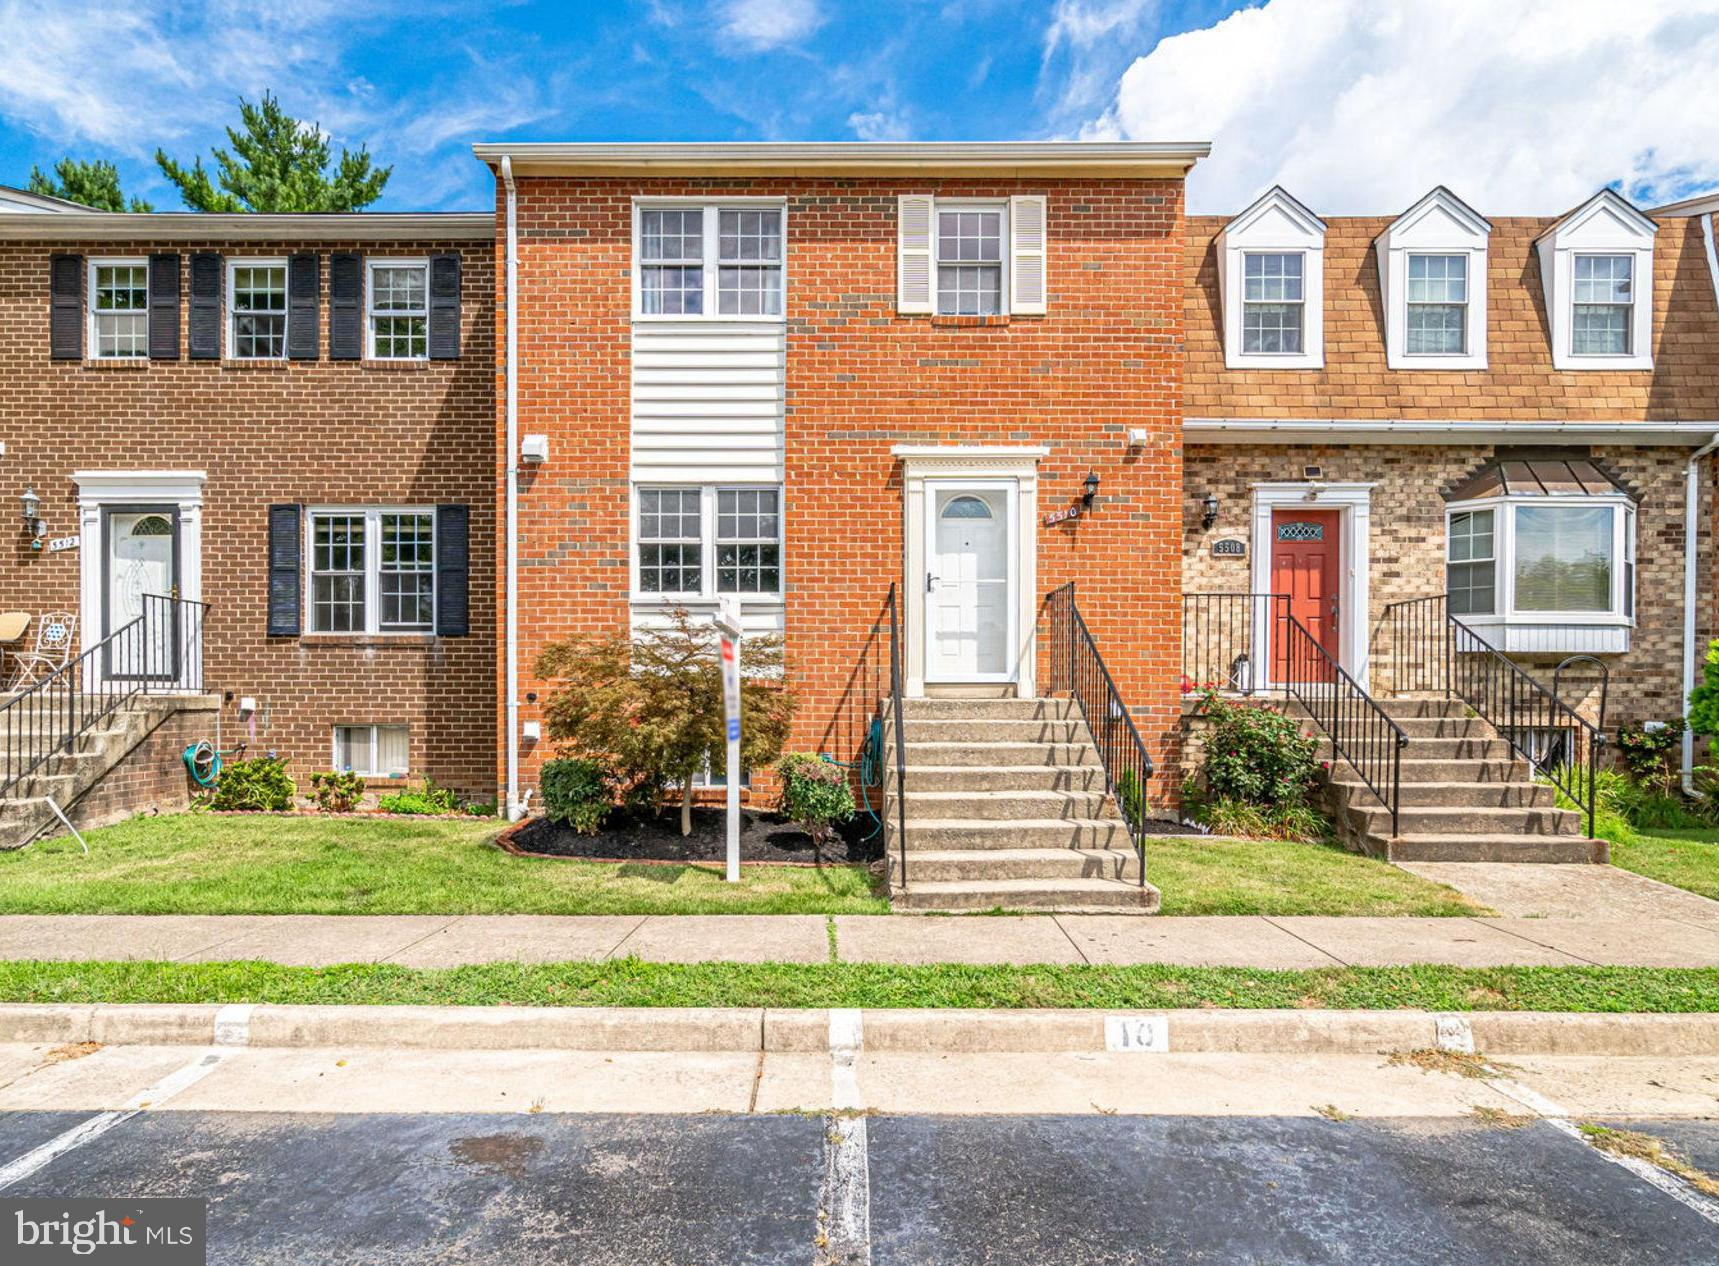 Beautifully updated brick townhome minutes from Kingstowne! Over 2,000 sq ft of finished space and move-in ready! This incredible home features 3 bedrooms, 2 full baths & 2 half baths. Kitchen completely remodeled and opened up in 2012. The kitchen features beautiful granite counters, stainless appliances, breakfast bar, slow-close cabinets, and stylish backsplash. All bathrooms updated in the last 5 years, water heater replaced in 2018, roof in 2011, and HVAC in 2008.  This home also includes a finished basement with updated half bath, spacious rec room w/fireplace, laundry, and lots of storage.  Updated flooring throughout the entire home, lots of recessed lighting, vinyl windows, and great natural light.  The outdoor features a great deck and fenced rear yard. All of this just minutes to metro, shopping, restaurants, Kingstowne Towne Center, bus stop, schools, and easy commuting routes.  Don't miss this one ~ it won't last!